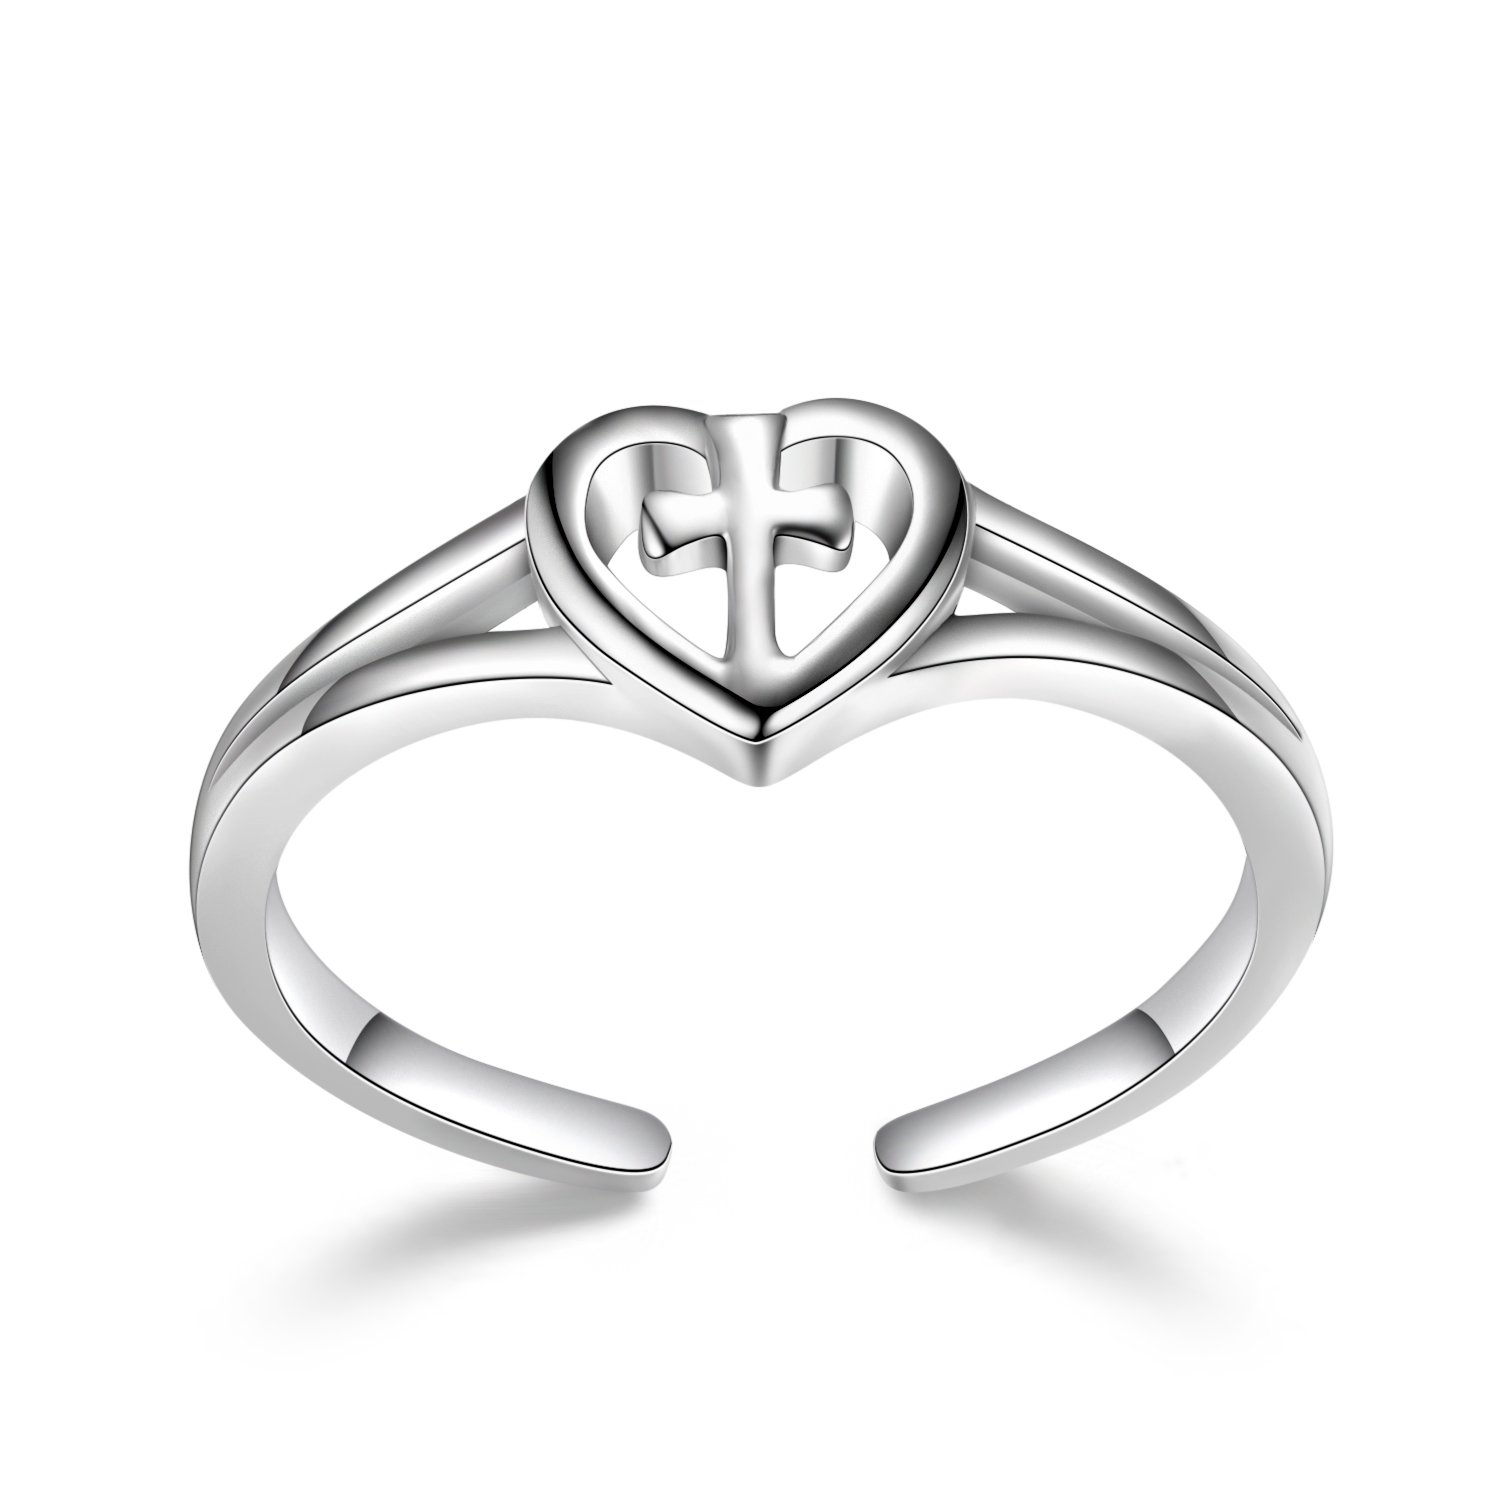 Sterling Silver Love Cross Rings Adjustable Open Polished Christian Heart Promise Anniversary Rings for Her, Size 7 by LUHE (Image #5)